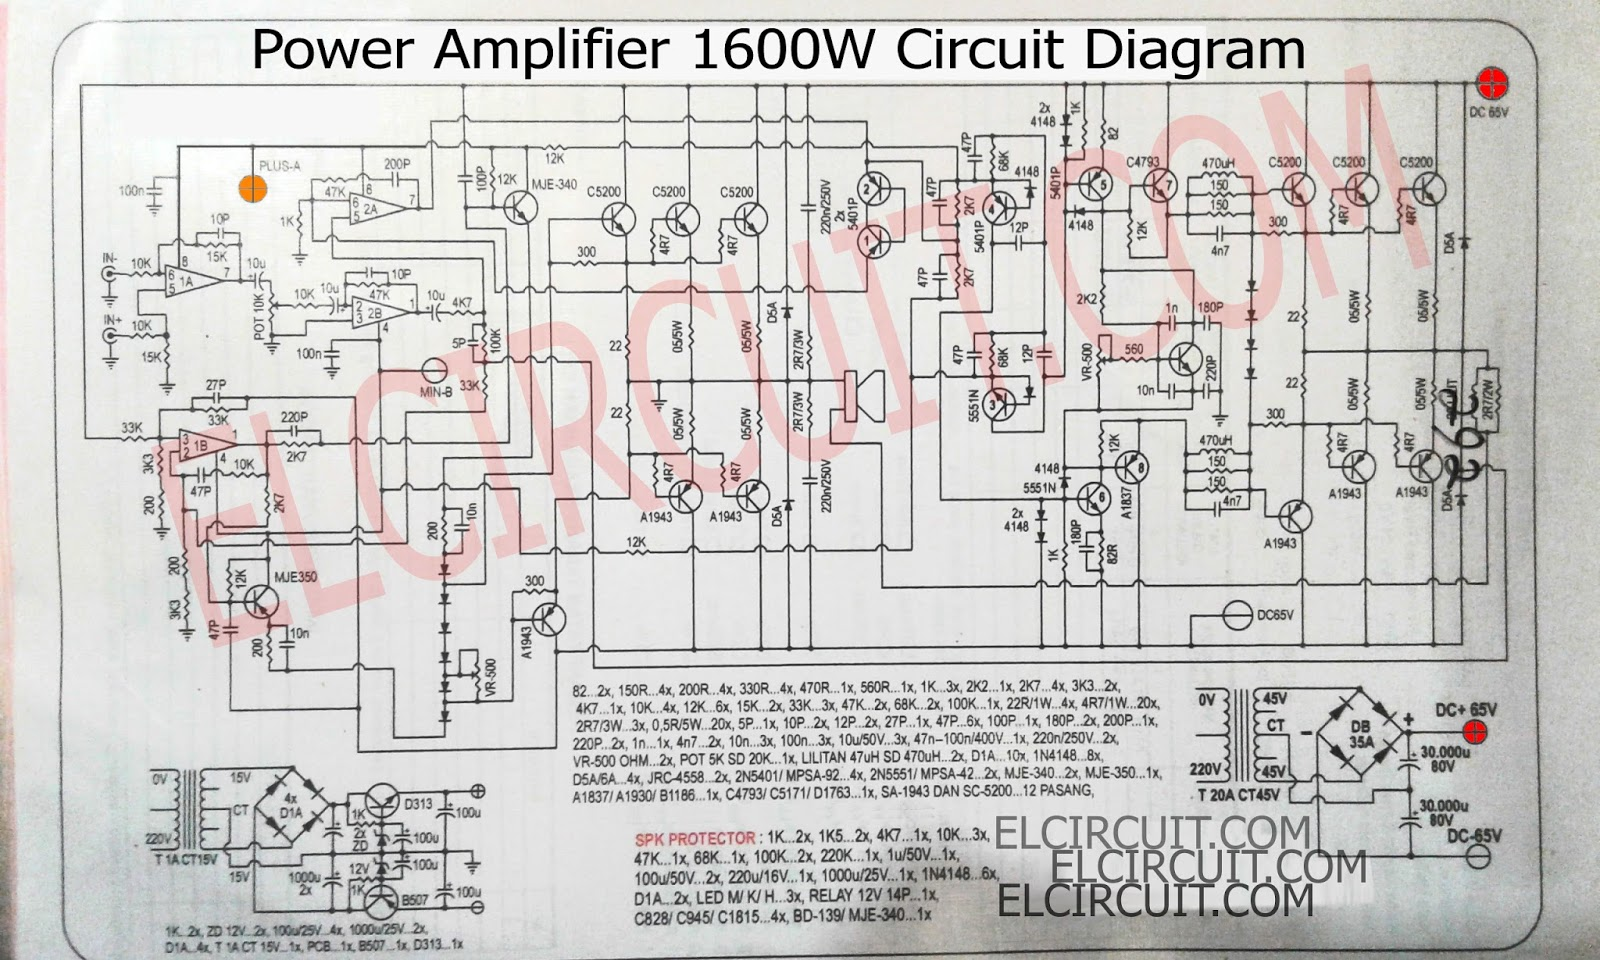 1600w high power amplifier circuit complete pcb layout 1600w high power amplifier circuit diagram asfbconference2016 Images